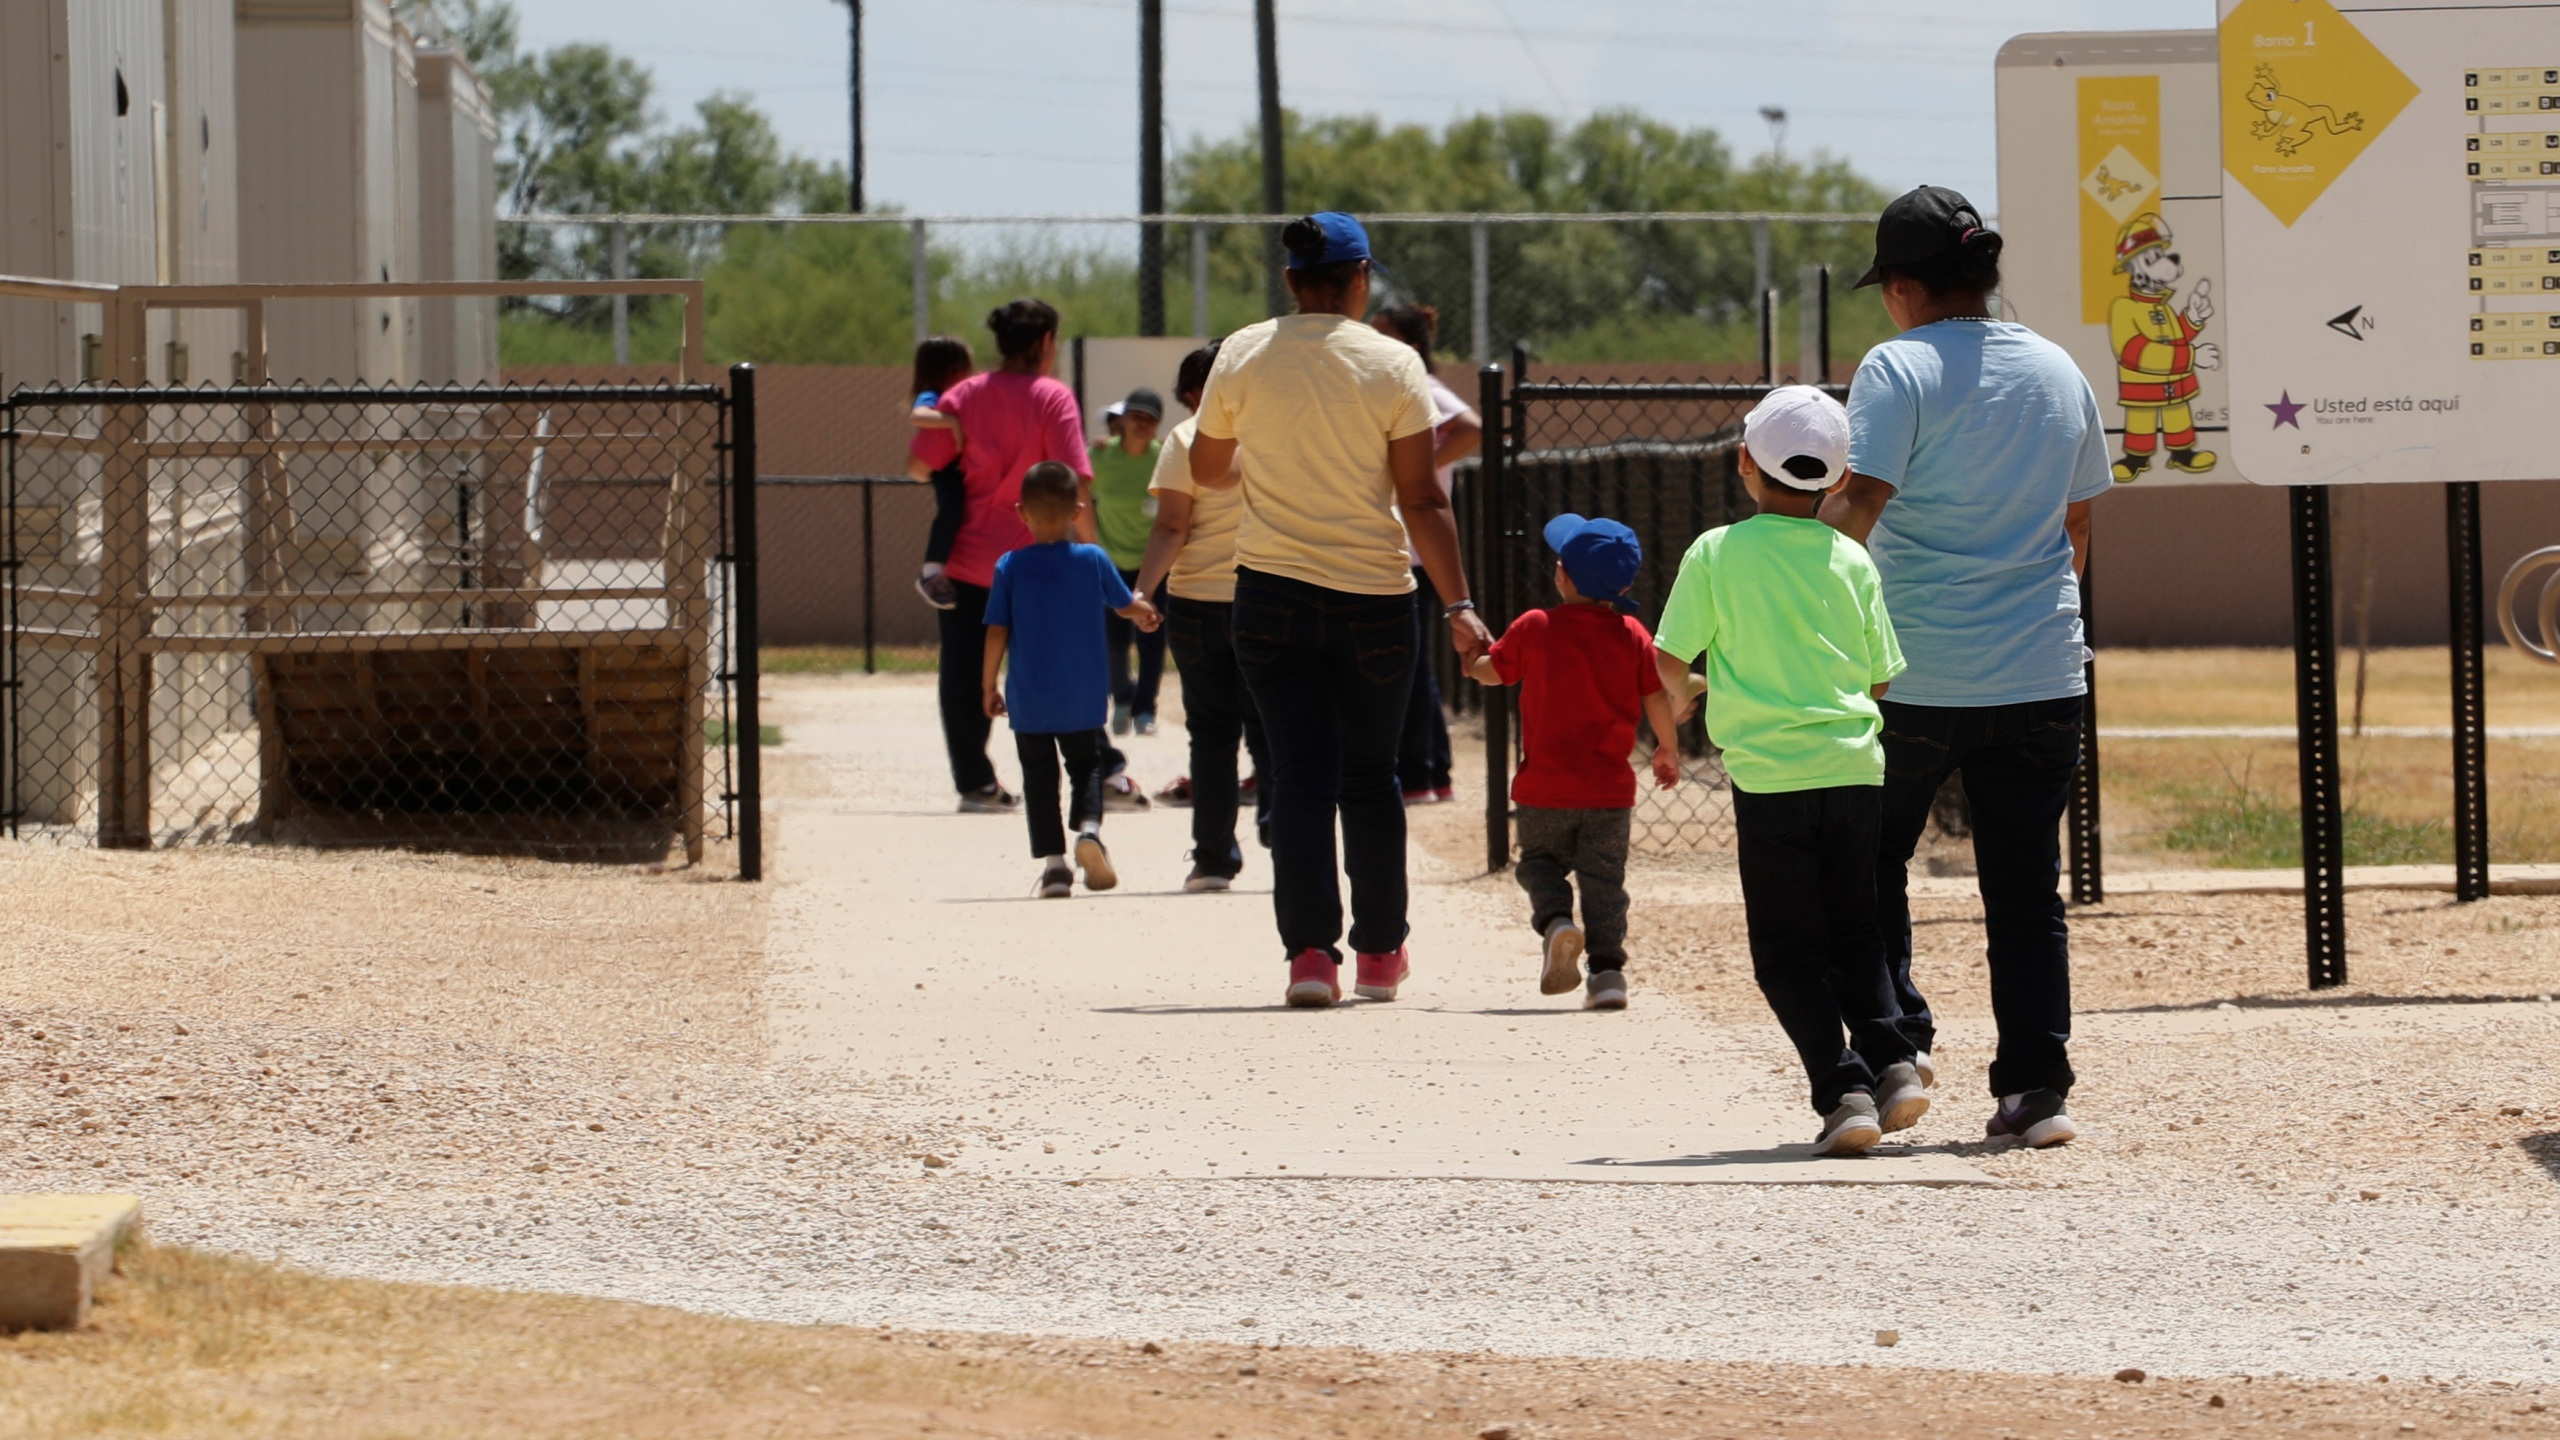 Immigrants seeking asylum hold hands as they leave a cafeteria at the ICE South Texas Family Residential Center in Dilley, Texas on Aug. 23, 2019. (AP Photo/Eric Gay, File)